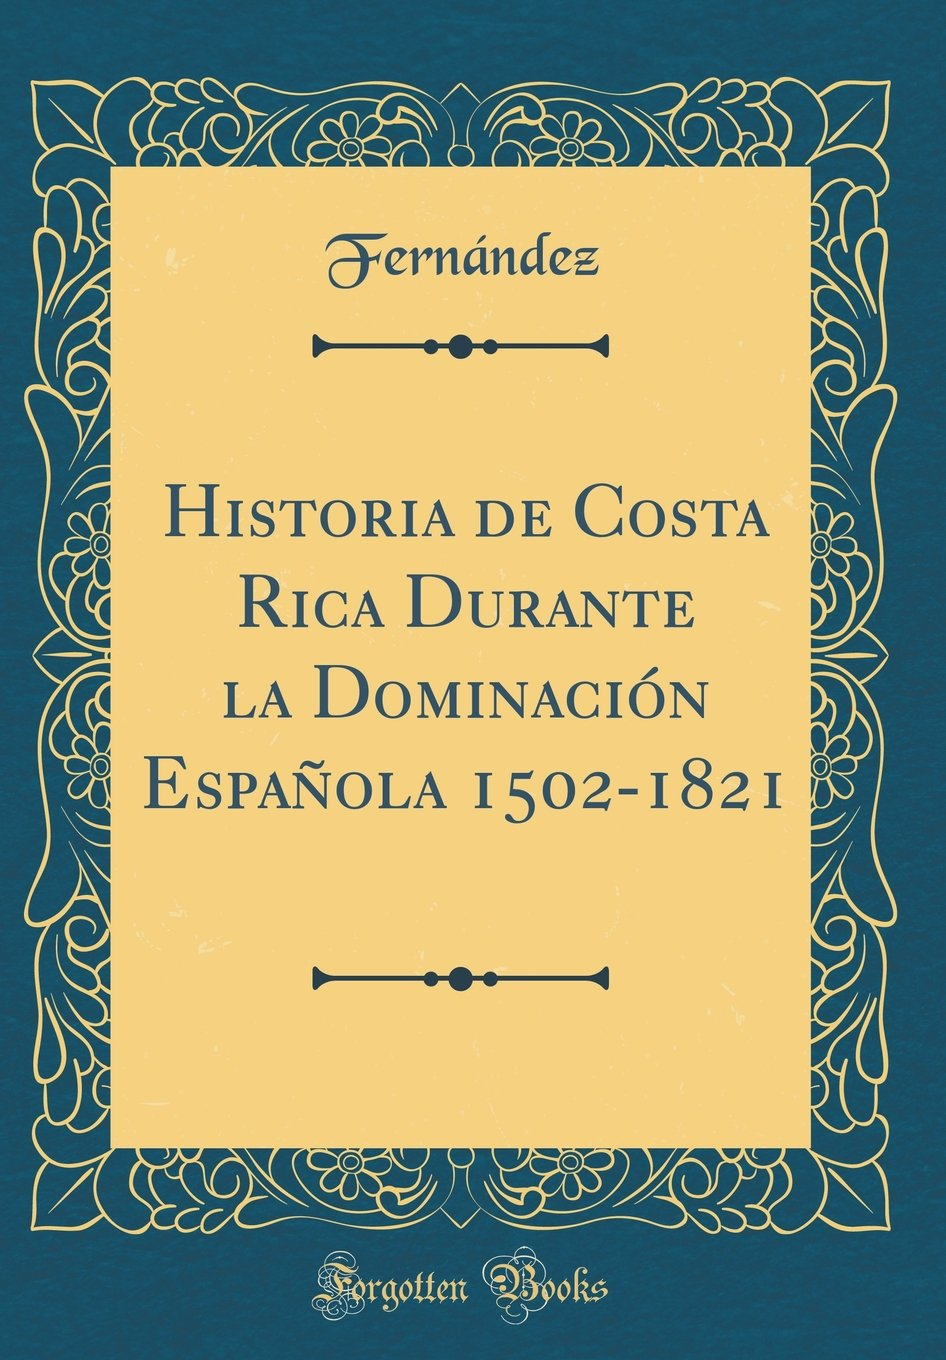 Download Historia de Costa Rica Durante la Dominación Española 1502-1821 (Classic Reprint) (Spanish Edition) ebook